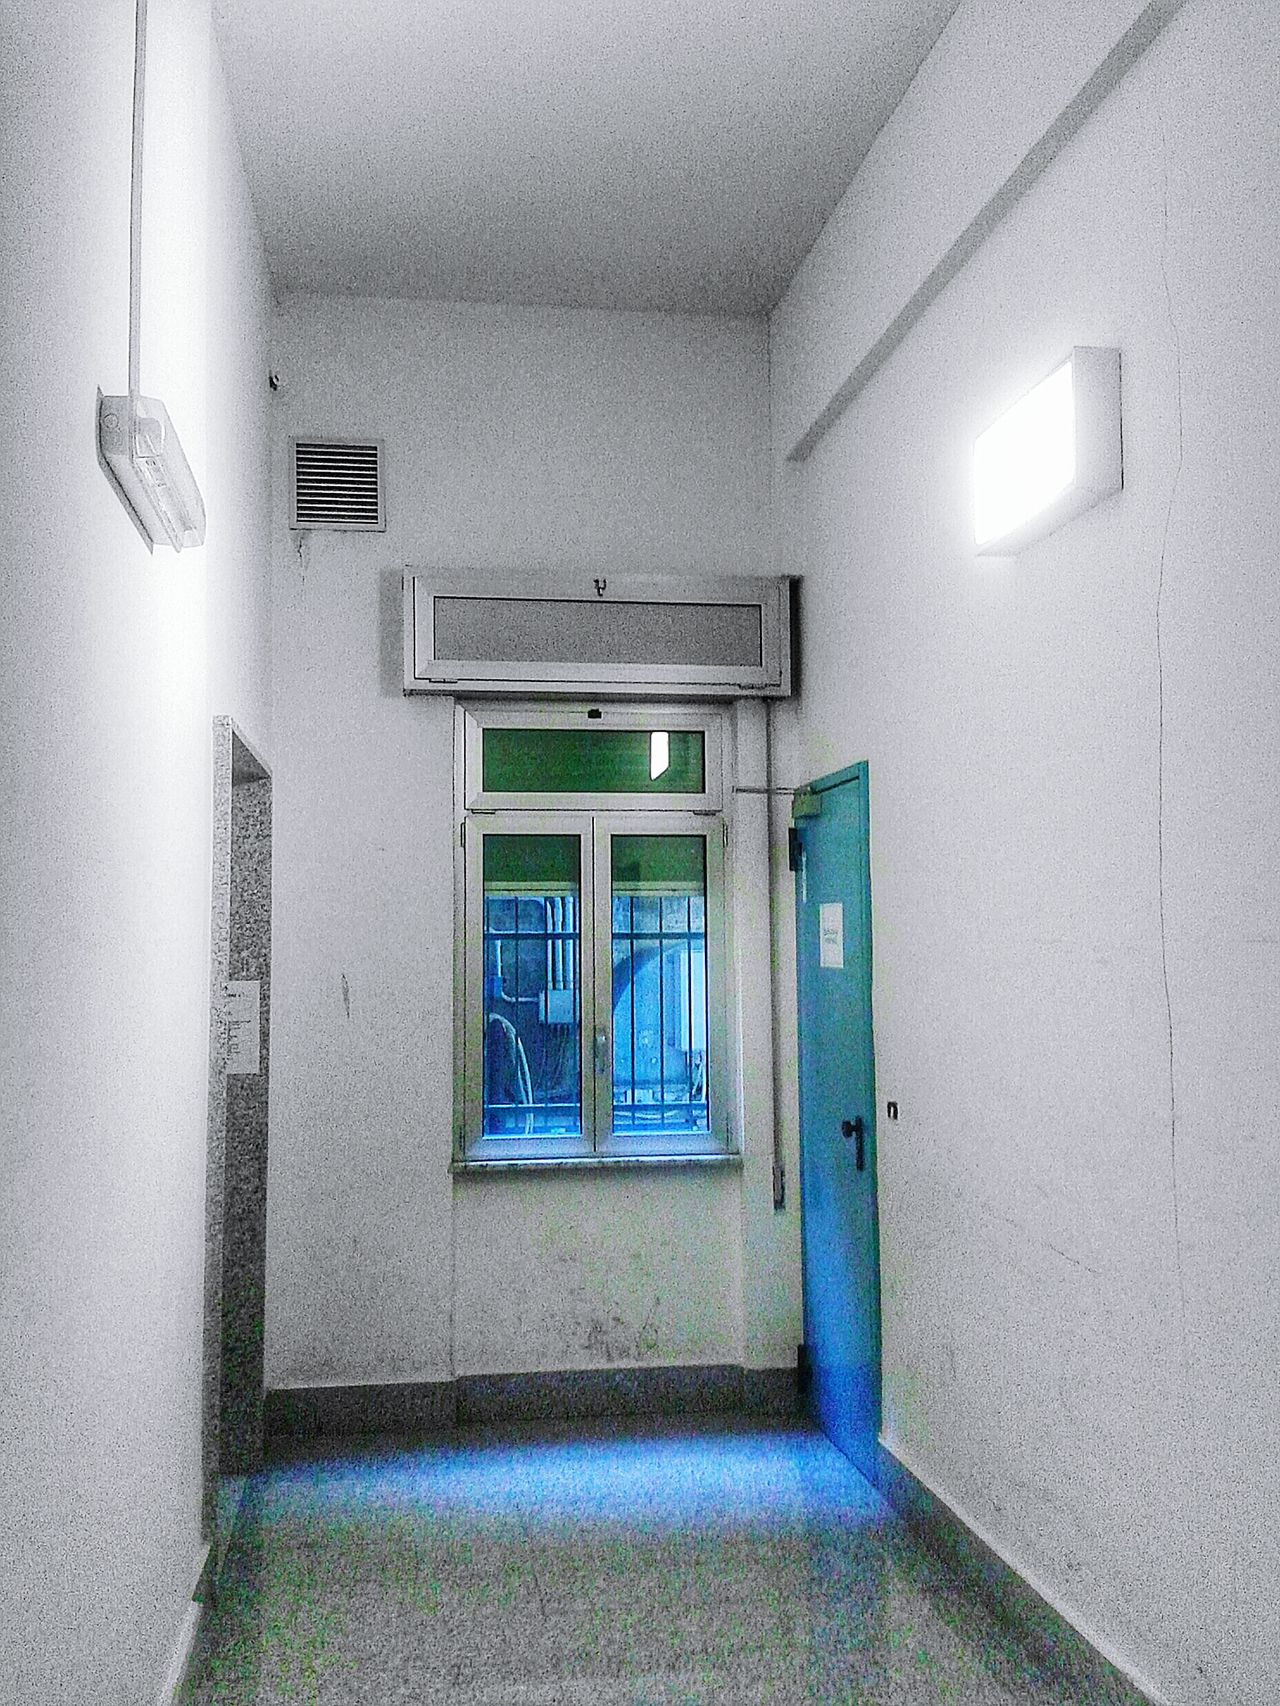 """""""Backdoor"""". Doors people are strange .... When You're Alone/ Window Corridor Interior Views Exploring The Unknown LOL S3mini Color Splash with Pixlr"""